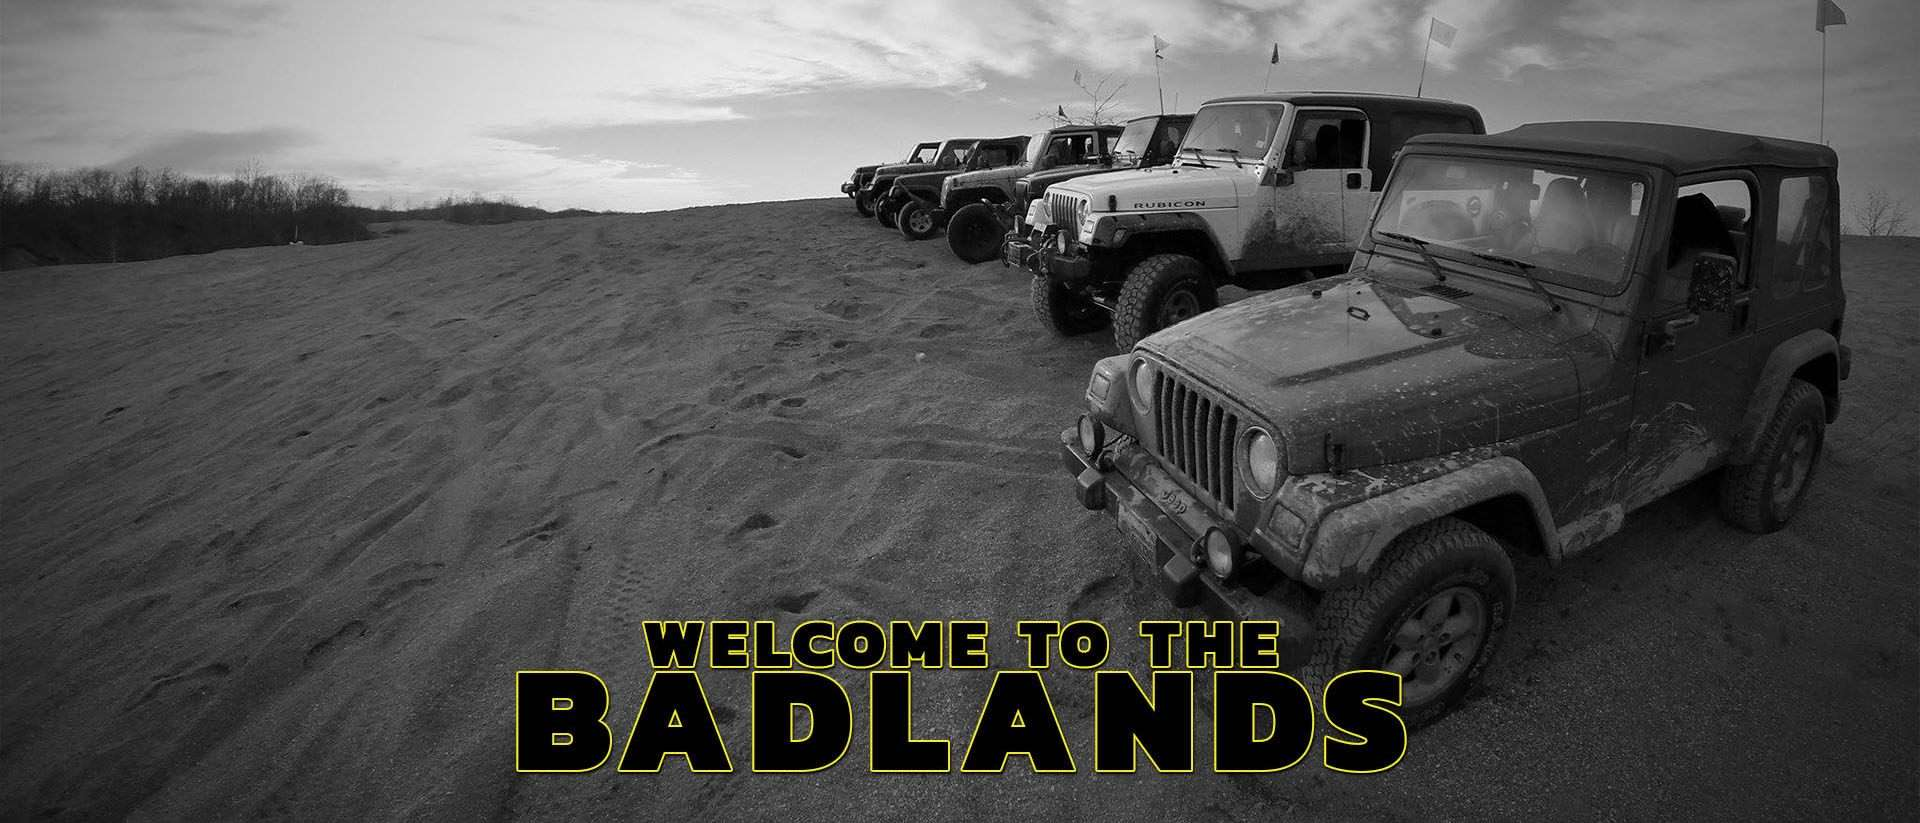 Badlands Off Road Park is located in Attica, IN | Your adventure begins here!